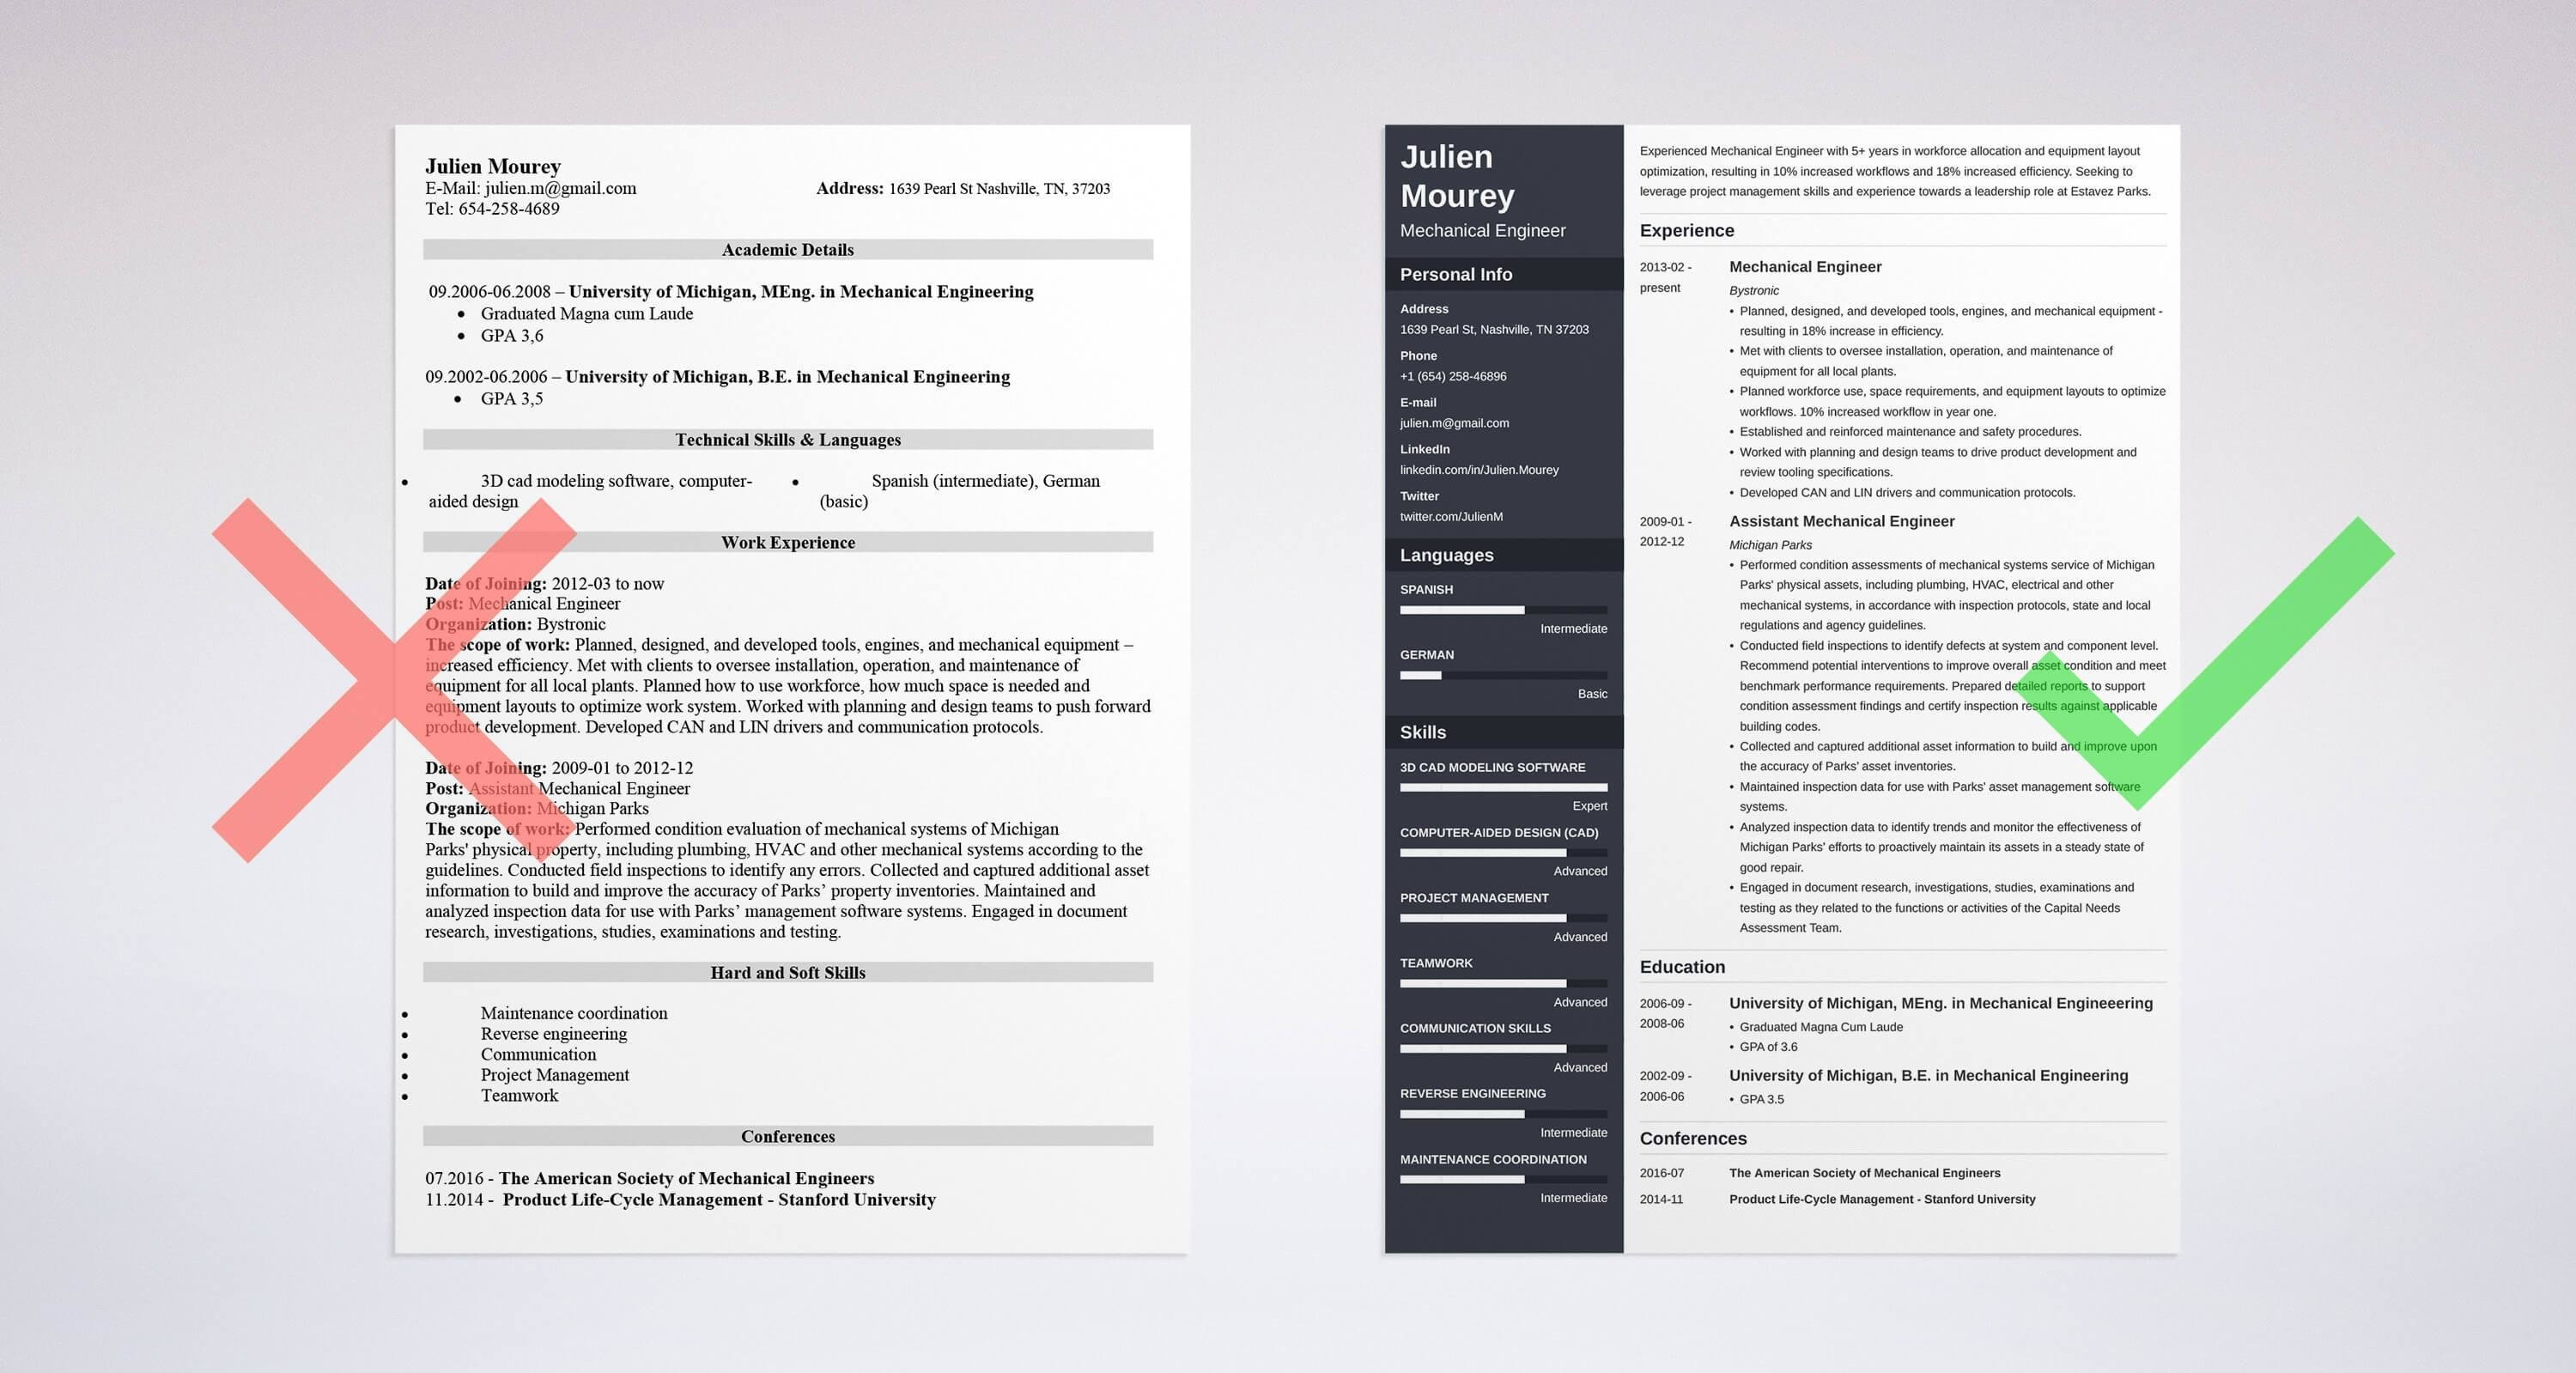 Mechanical Engineer Resume Template Mechanical Engineering Resume Sample & Guide [20 Examples]